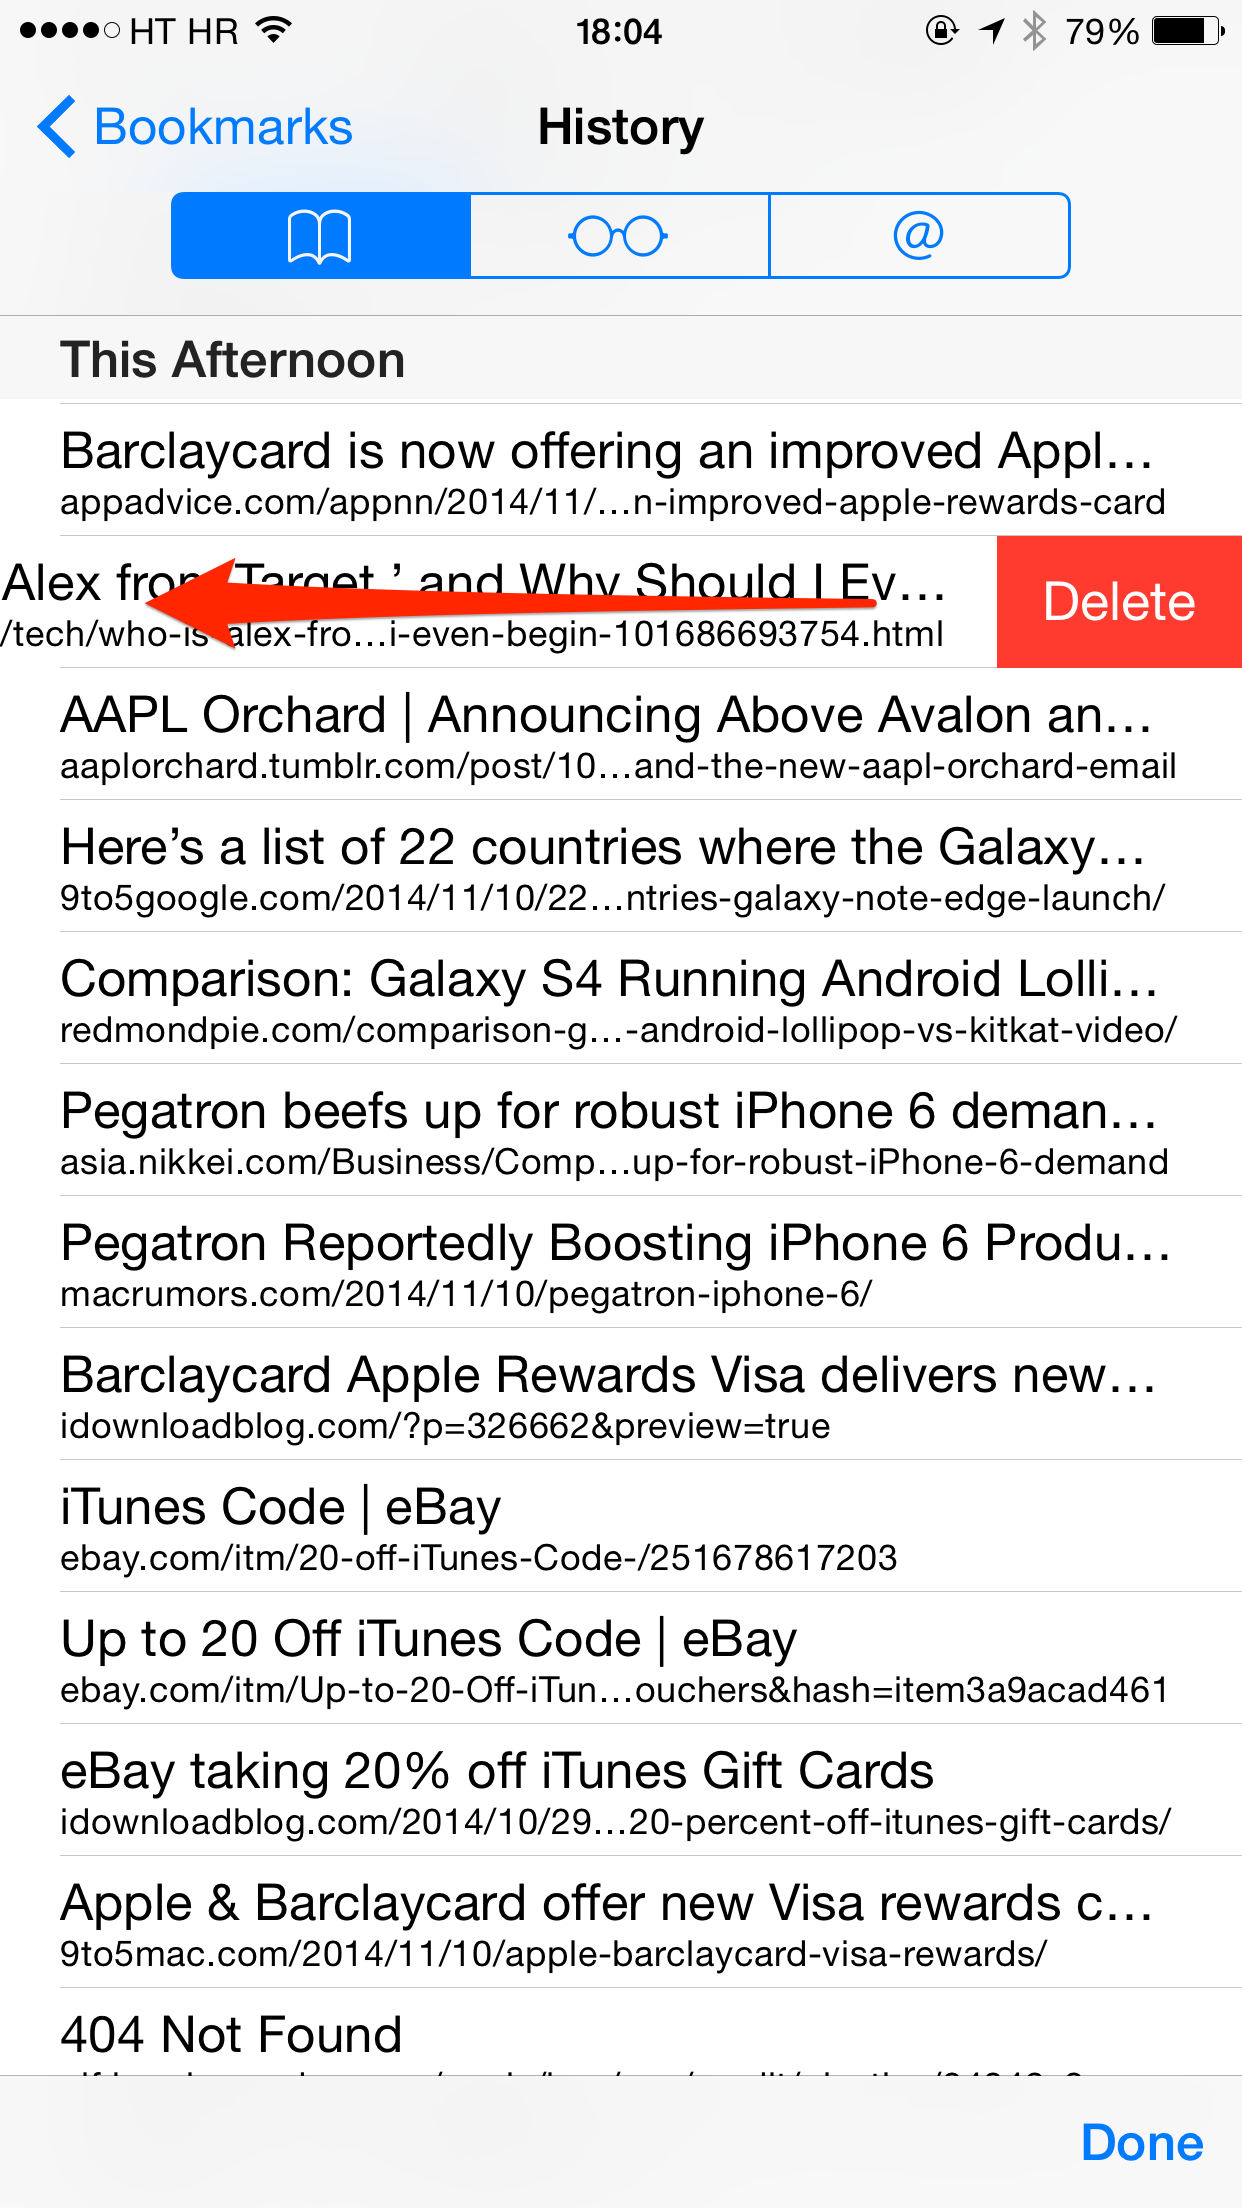 iOS 8 (how to delete invidiual pages from Safari history 002)